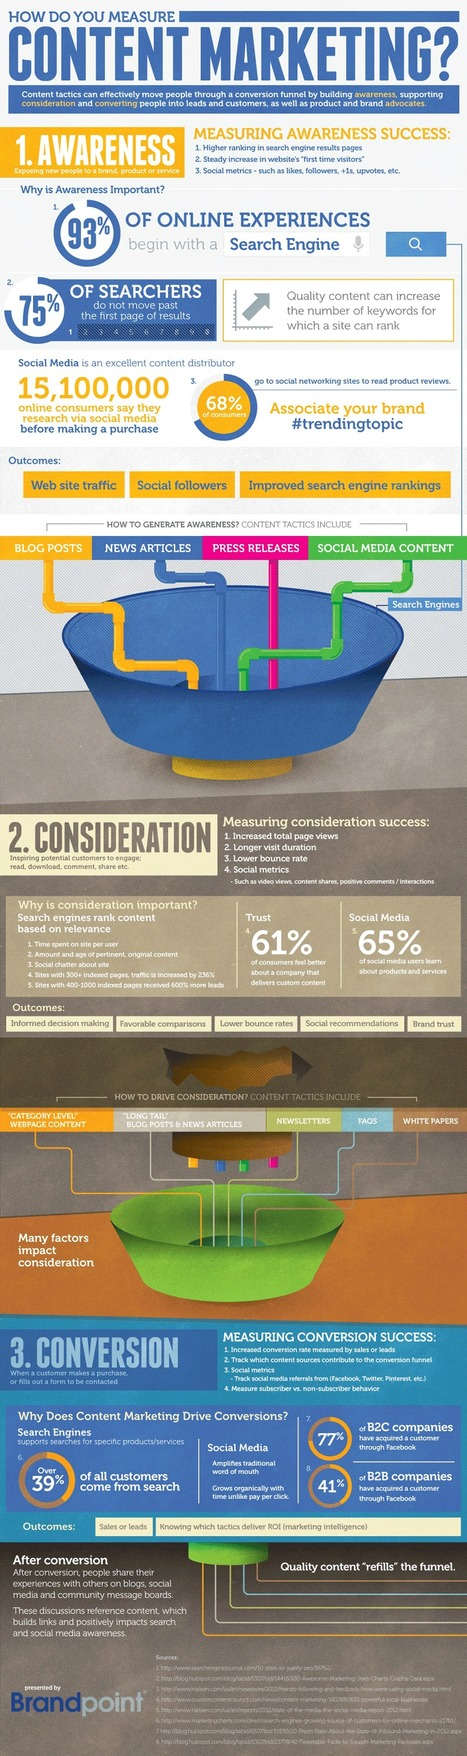 How to Measure Content Marketing Success | Infographic | Marketing, Social Media, E-commerce, Mobile, Videogames | Scoop.it